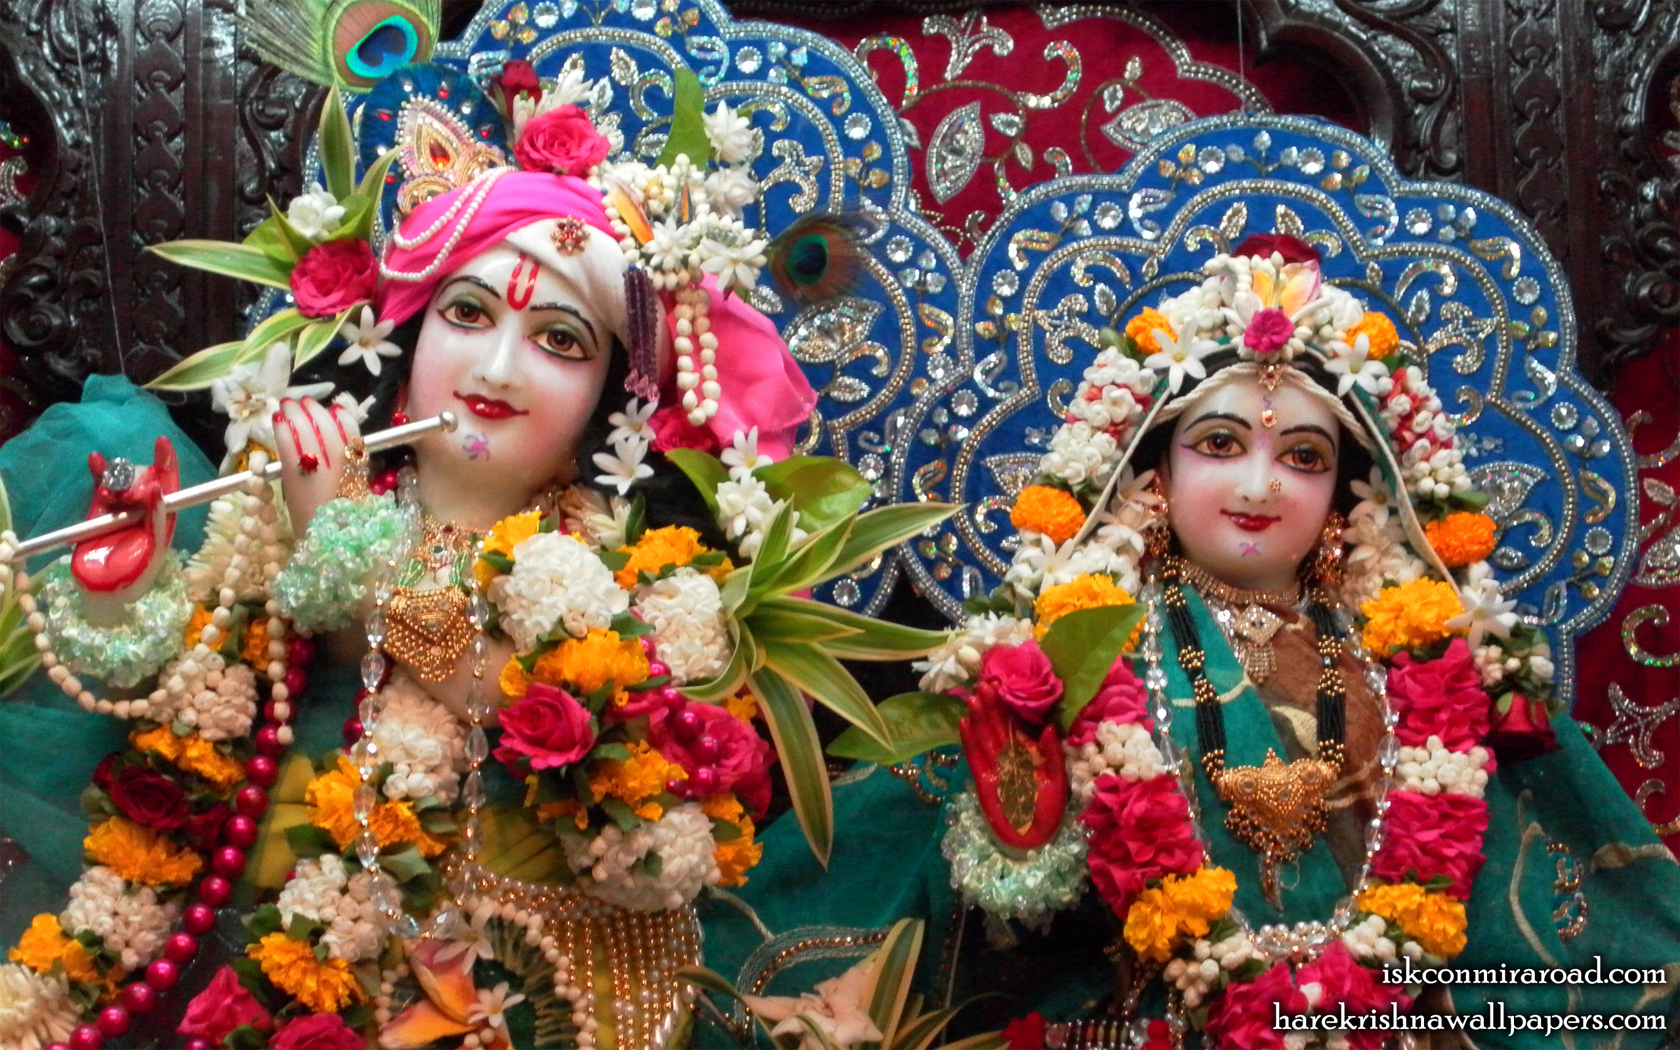 Sri Sri Radha Giridhari Close up Wallpaper (017) Size 1680x1050 Download